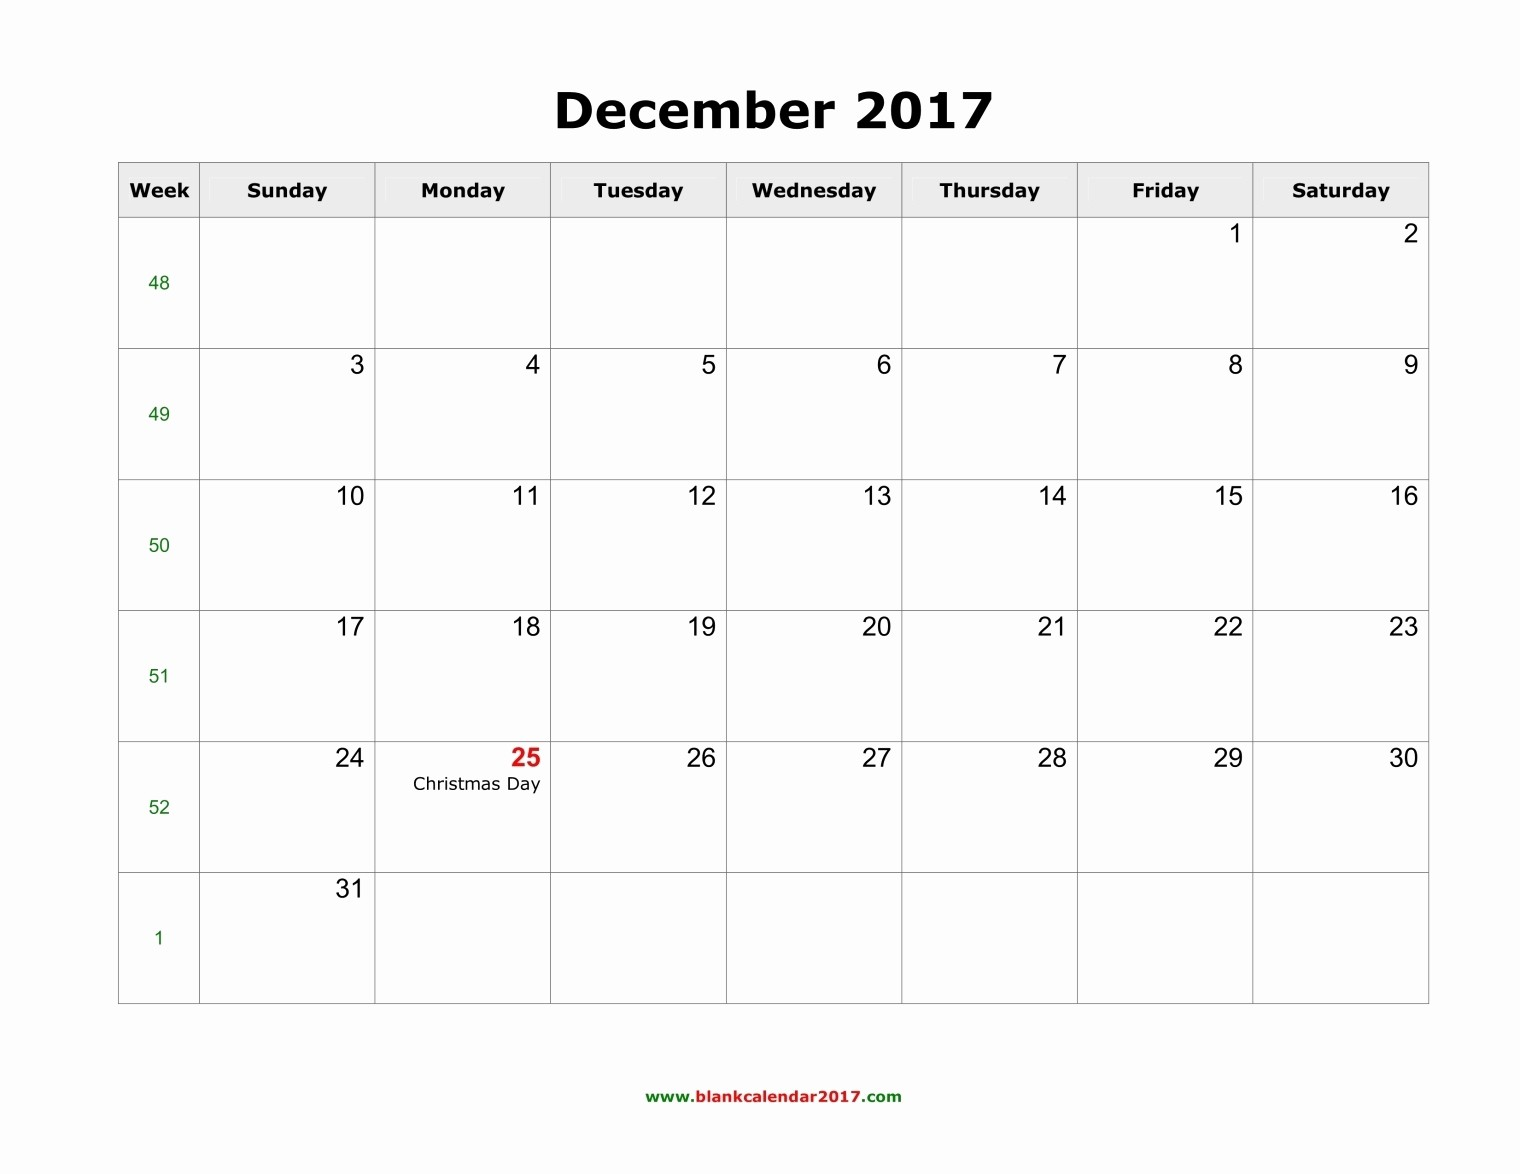 2017 Weekly Calendar with Holidays Inspirational December 2017 Calendar with Holidays